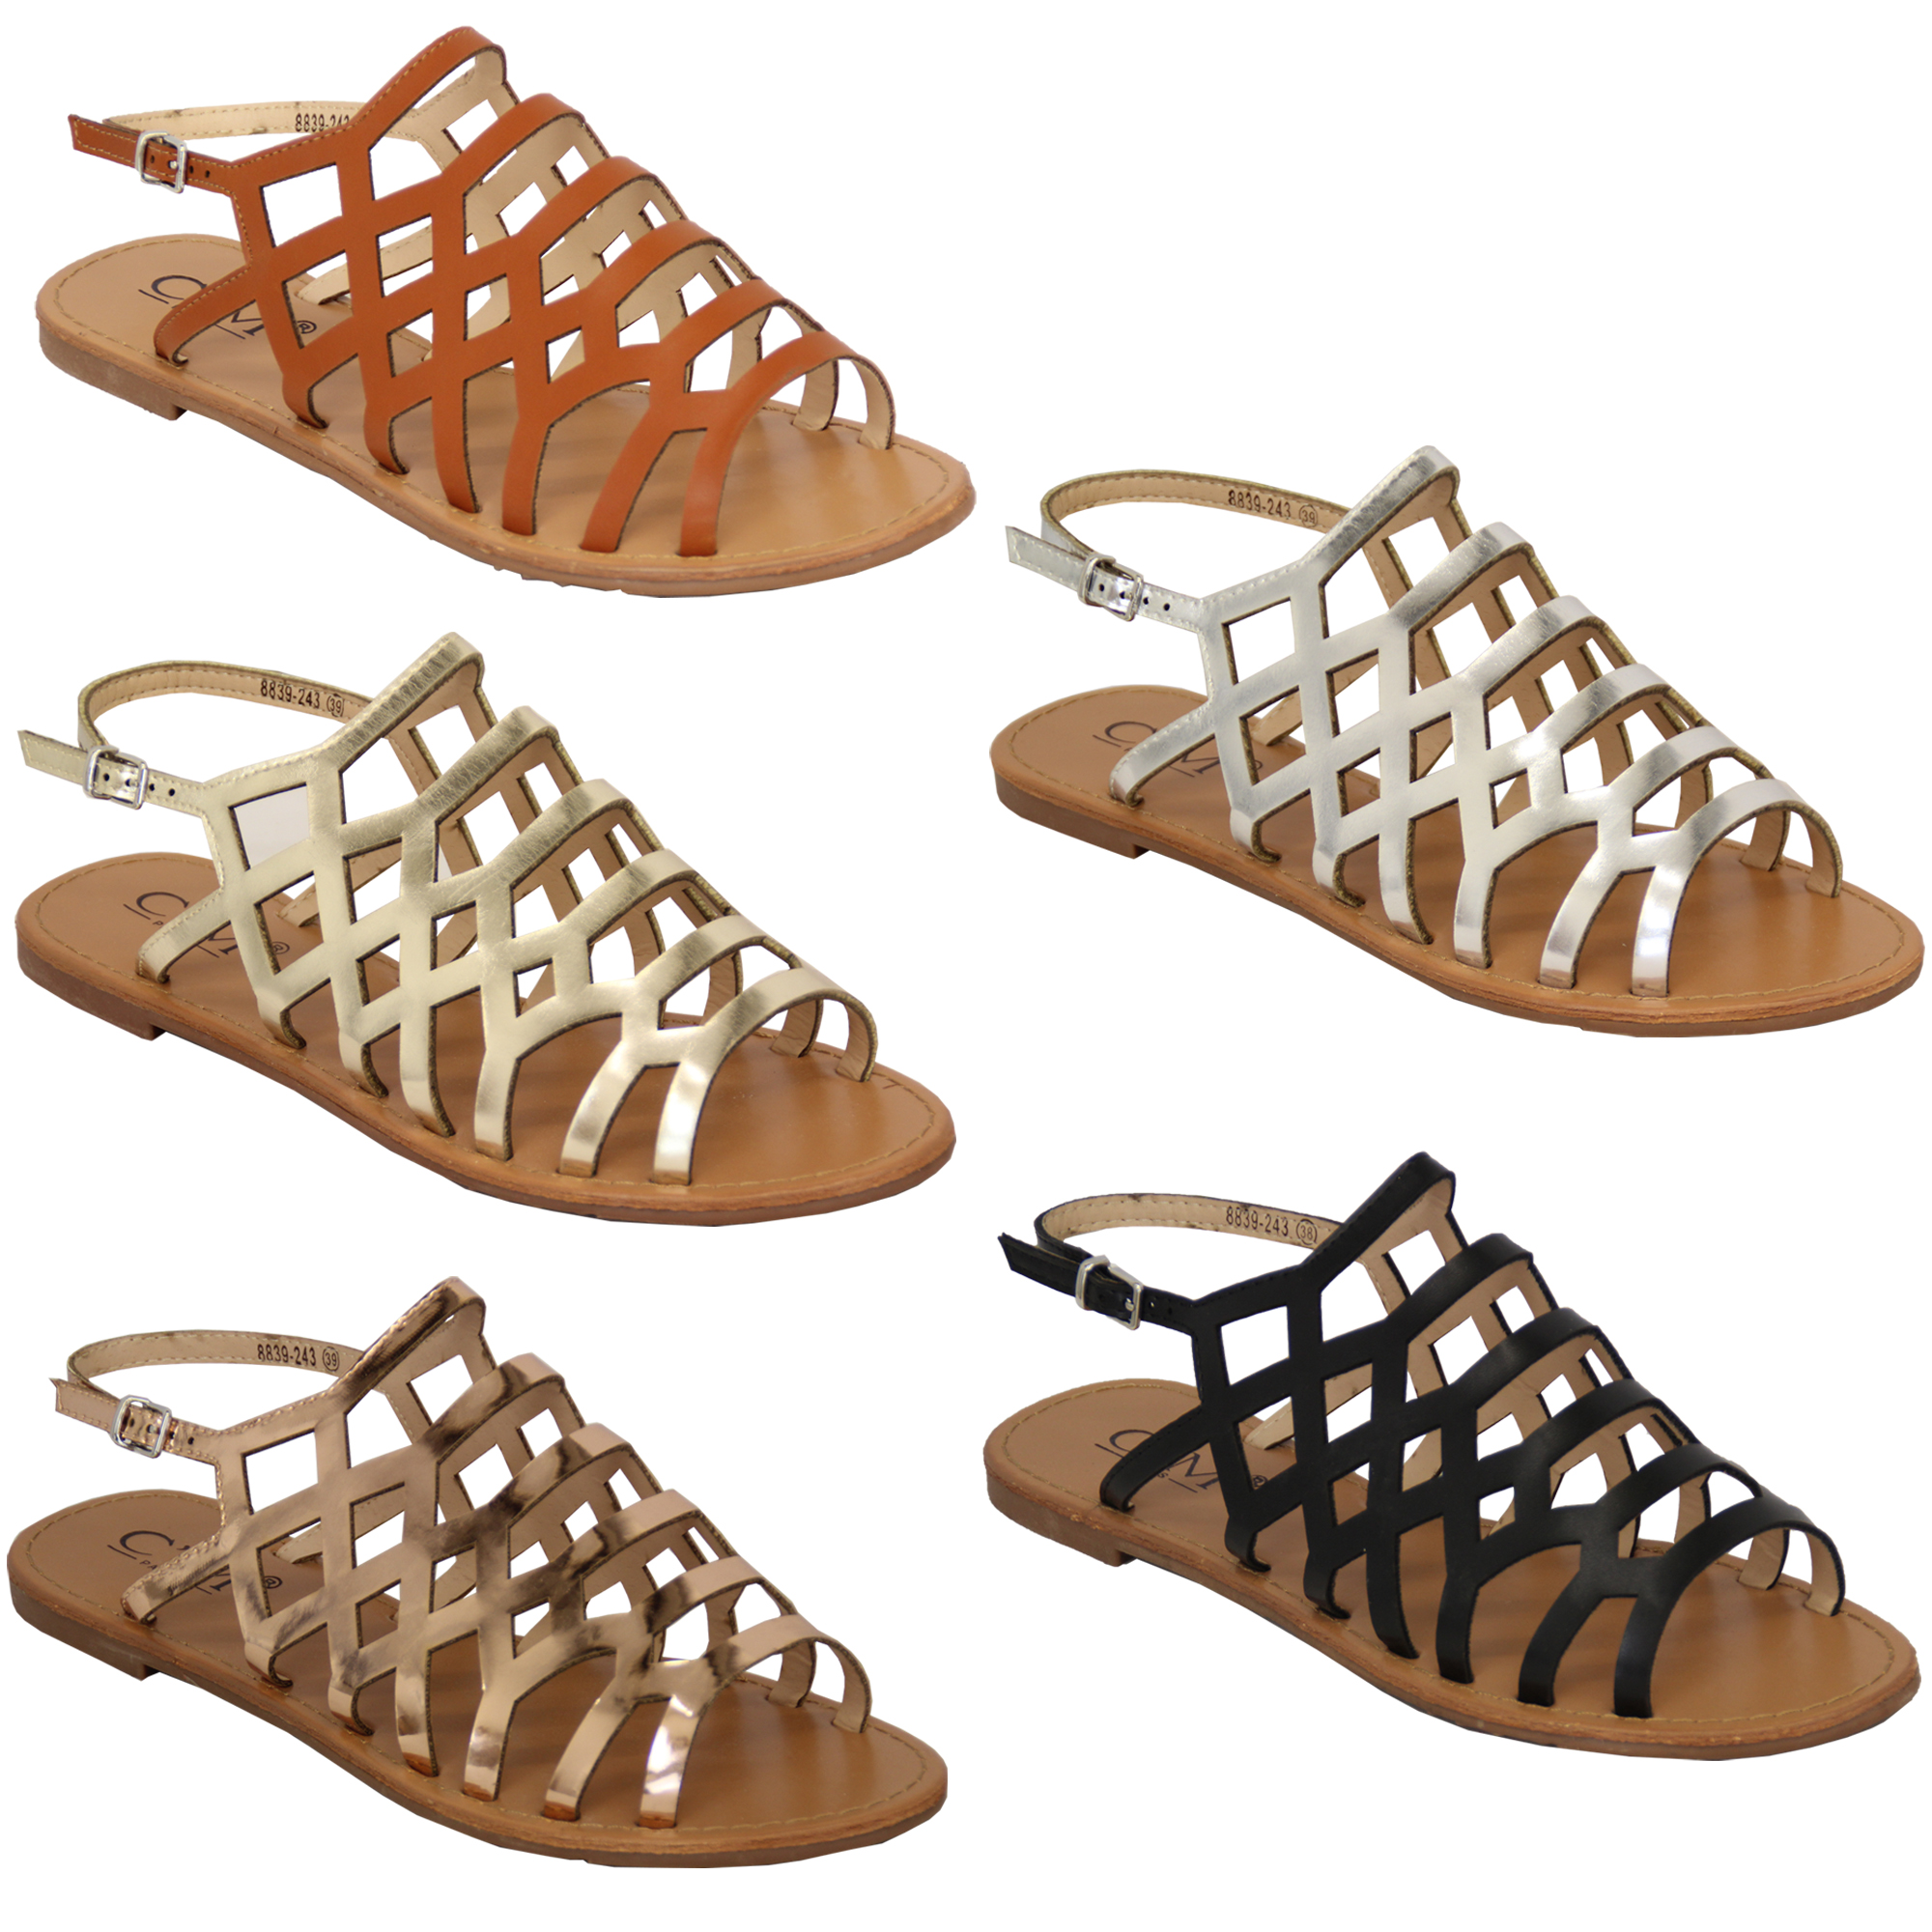 Details about Ladies Gladiator Sandals Womens Flat Open Toe Buckle Shoes Fashion Summer New